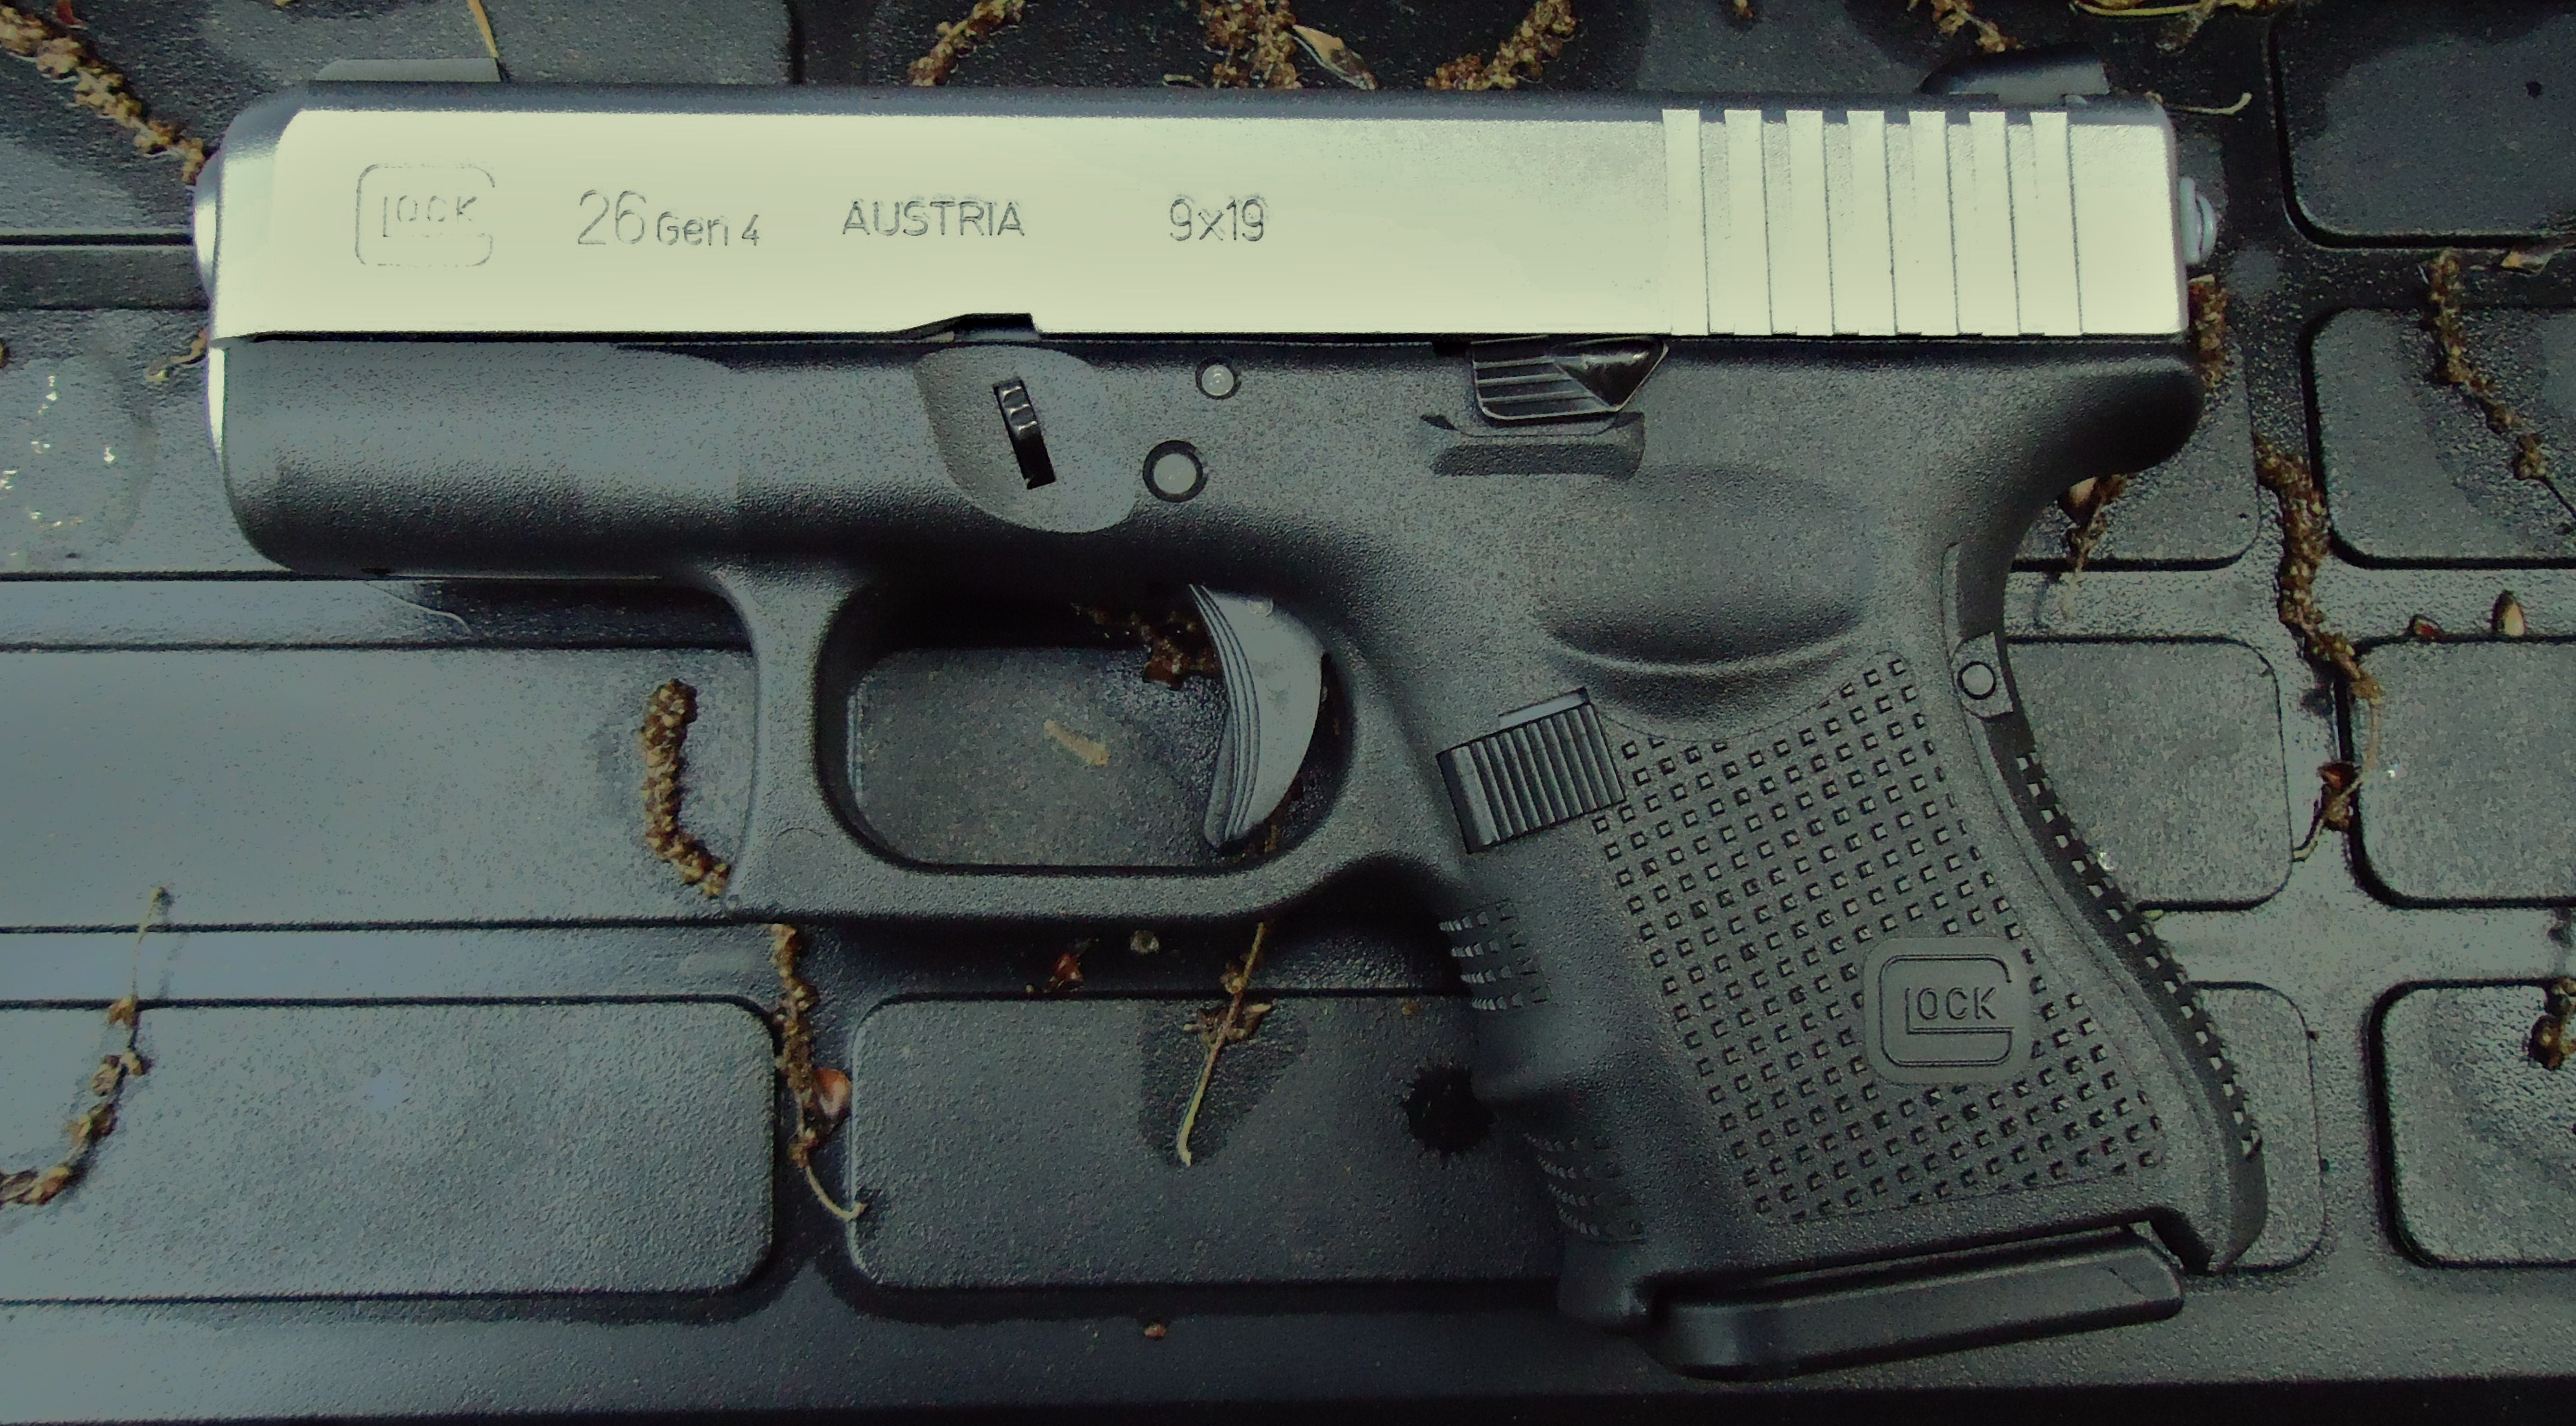 glock production date